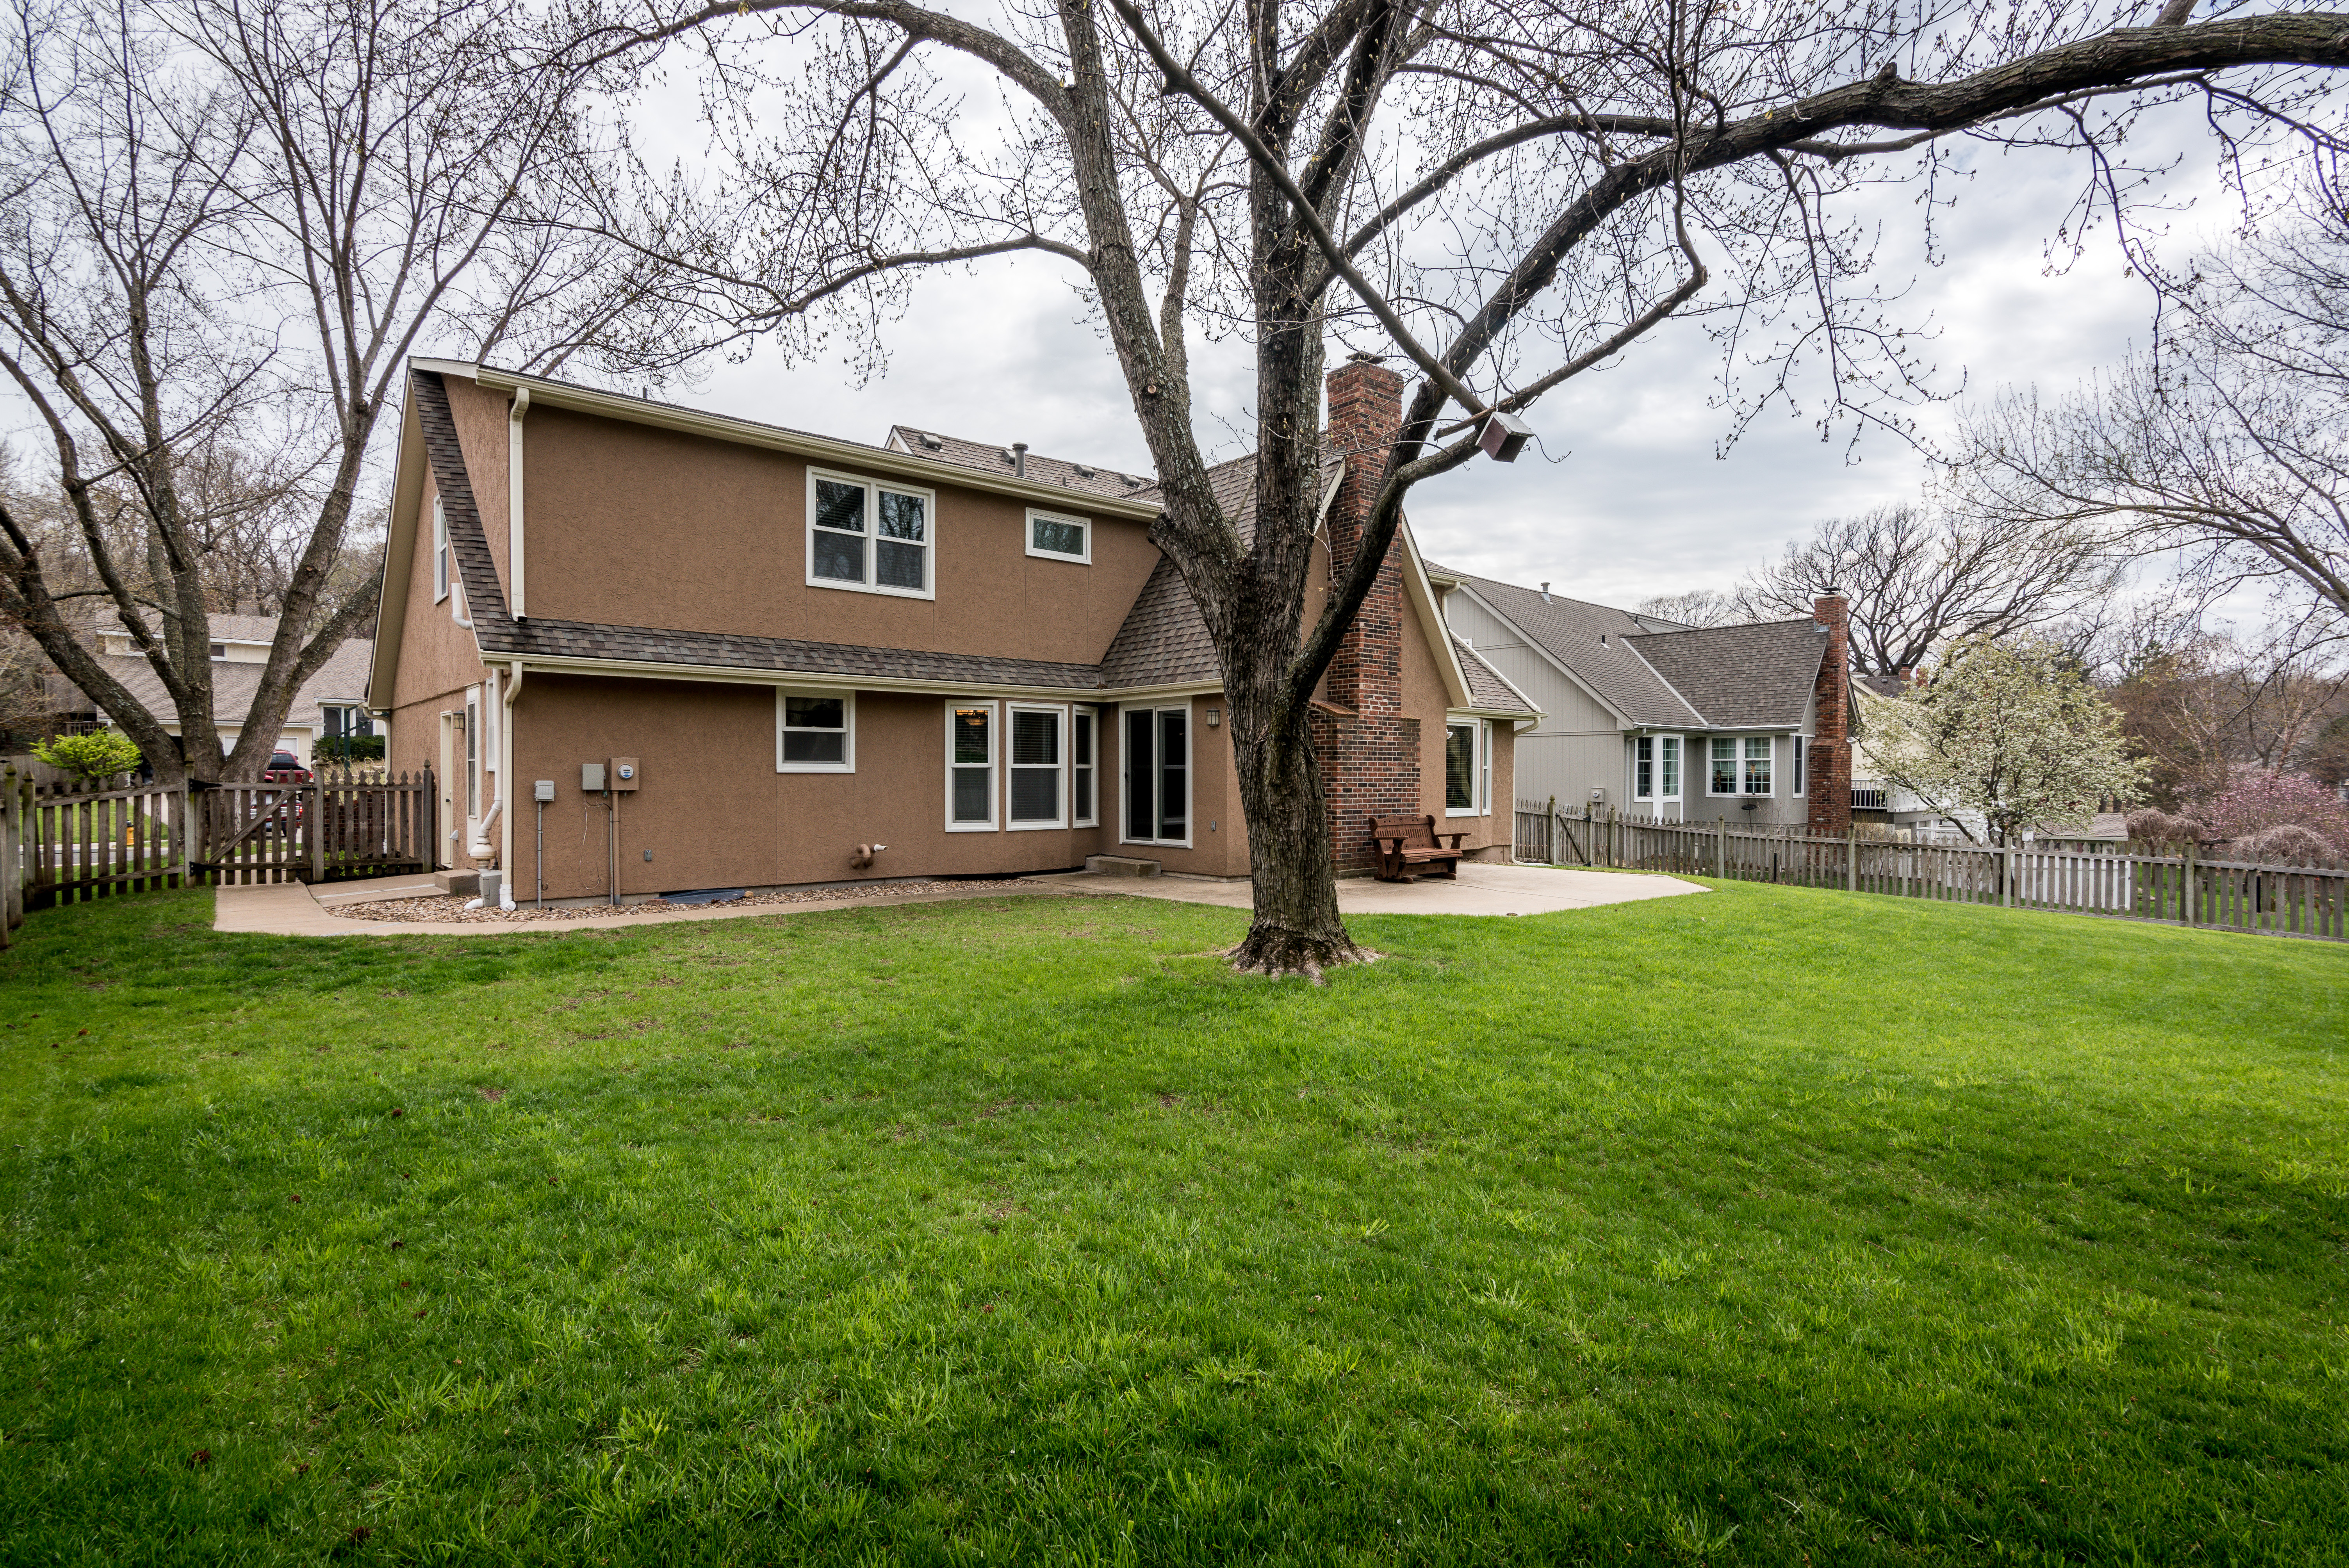 12616 W 76th Ter - ext-4